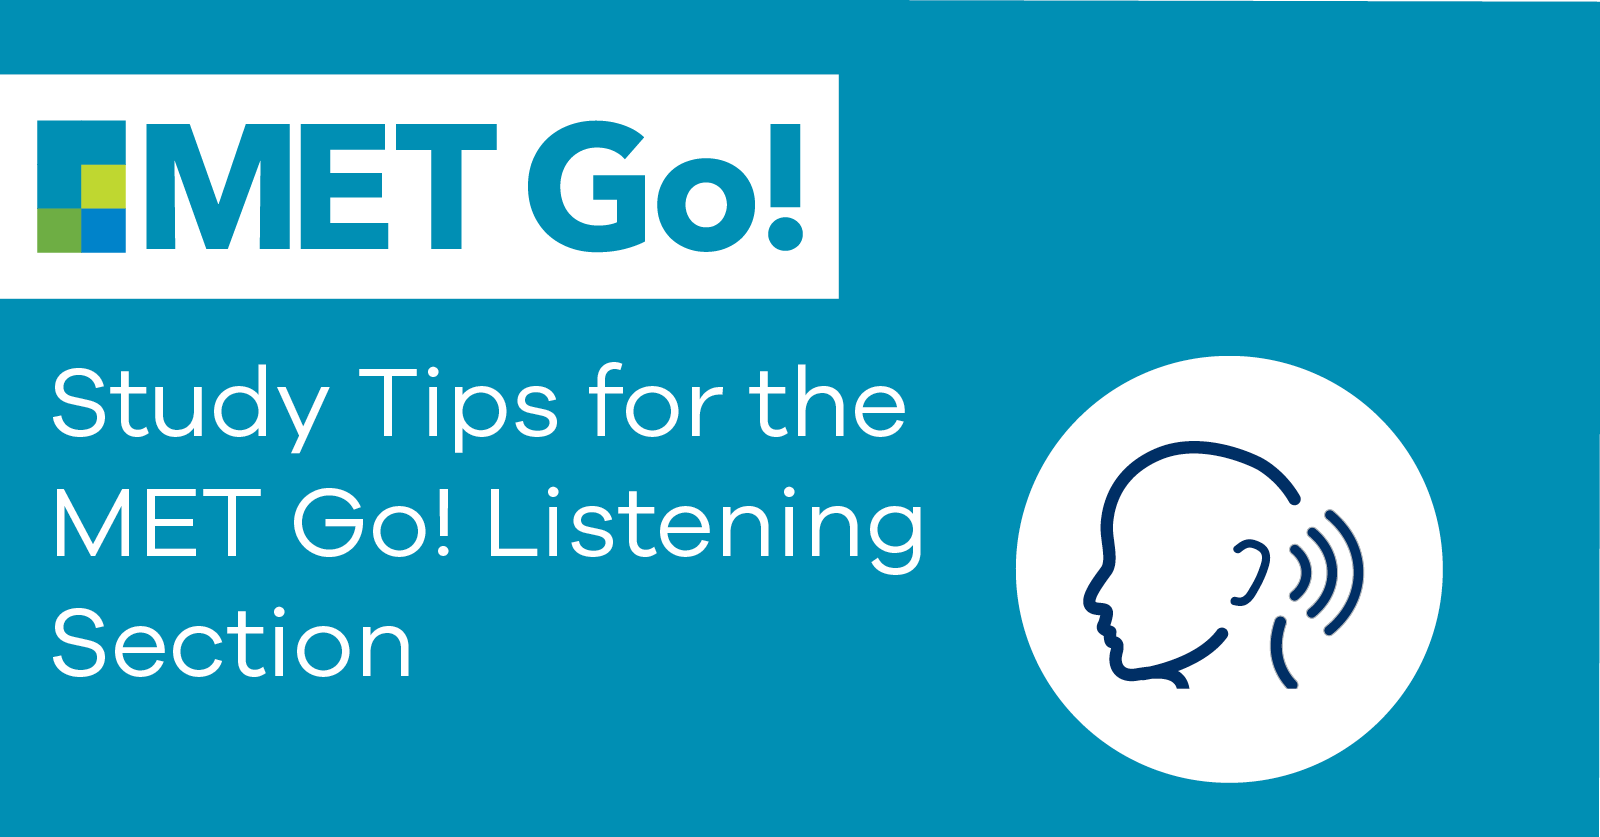 Study Tips for the MET Go! Listening Section